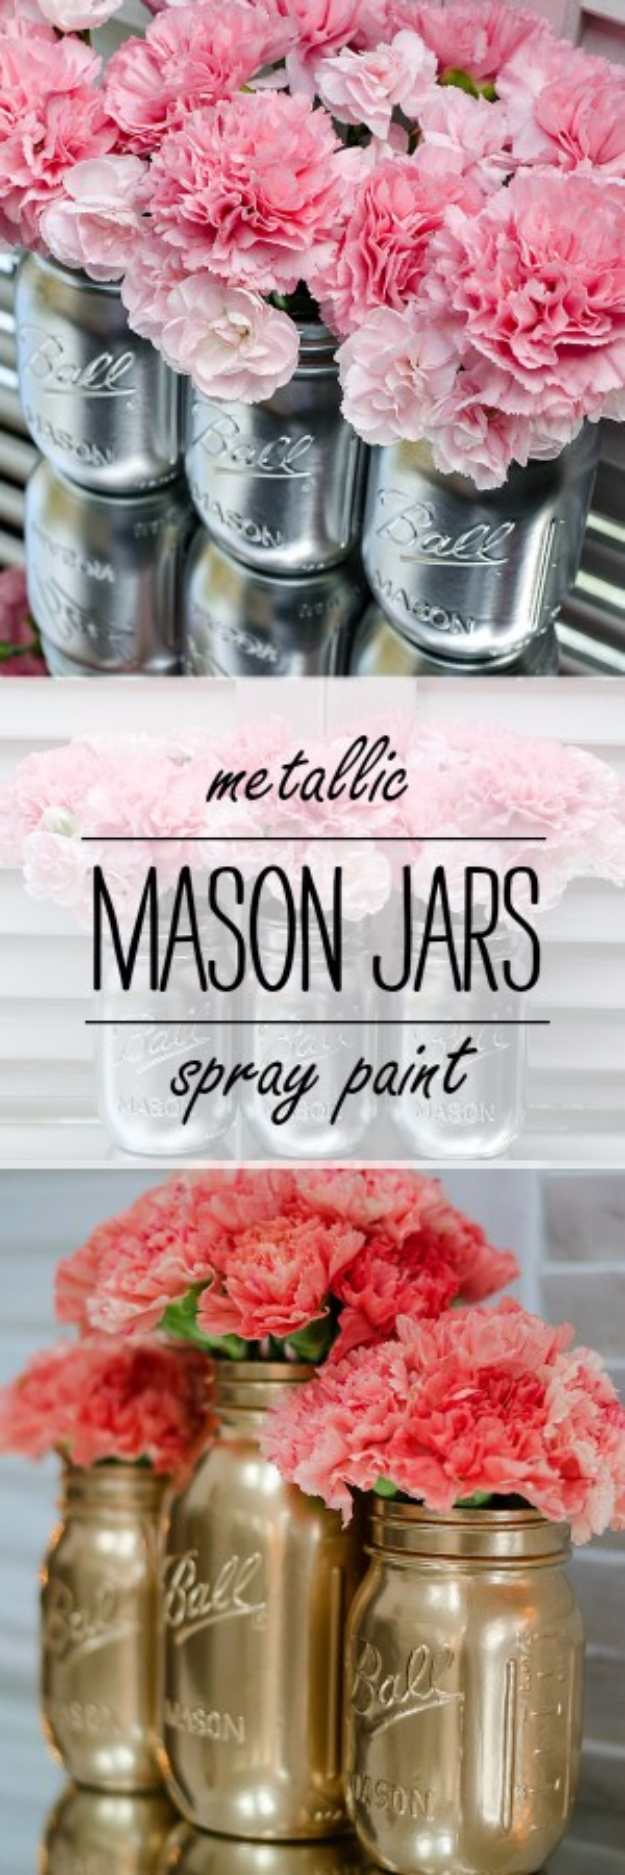 DIY Mason Jar Vases - Metallic Spray Paint Mason Jar Vases - Best Vase Projects and Ideas for Mason Jars - Painted, Wedding, Hanging Flowers, Centerpiece, Rustic Burlap, Ribbon and Twine